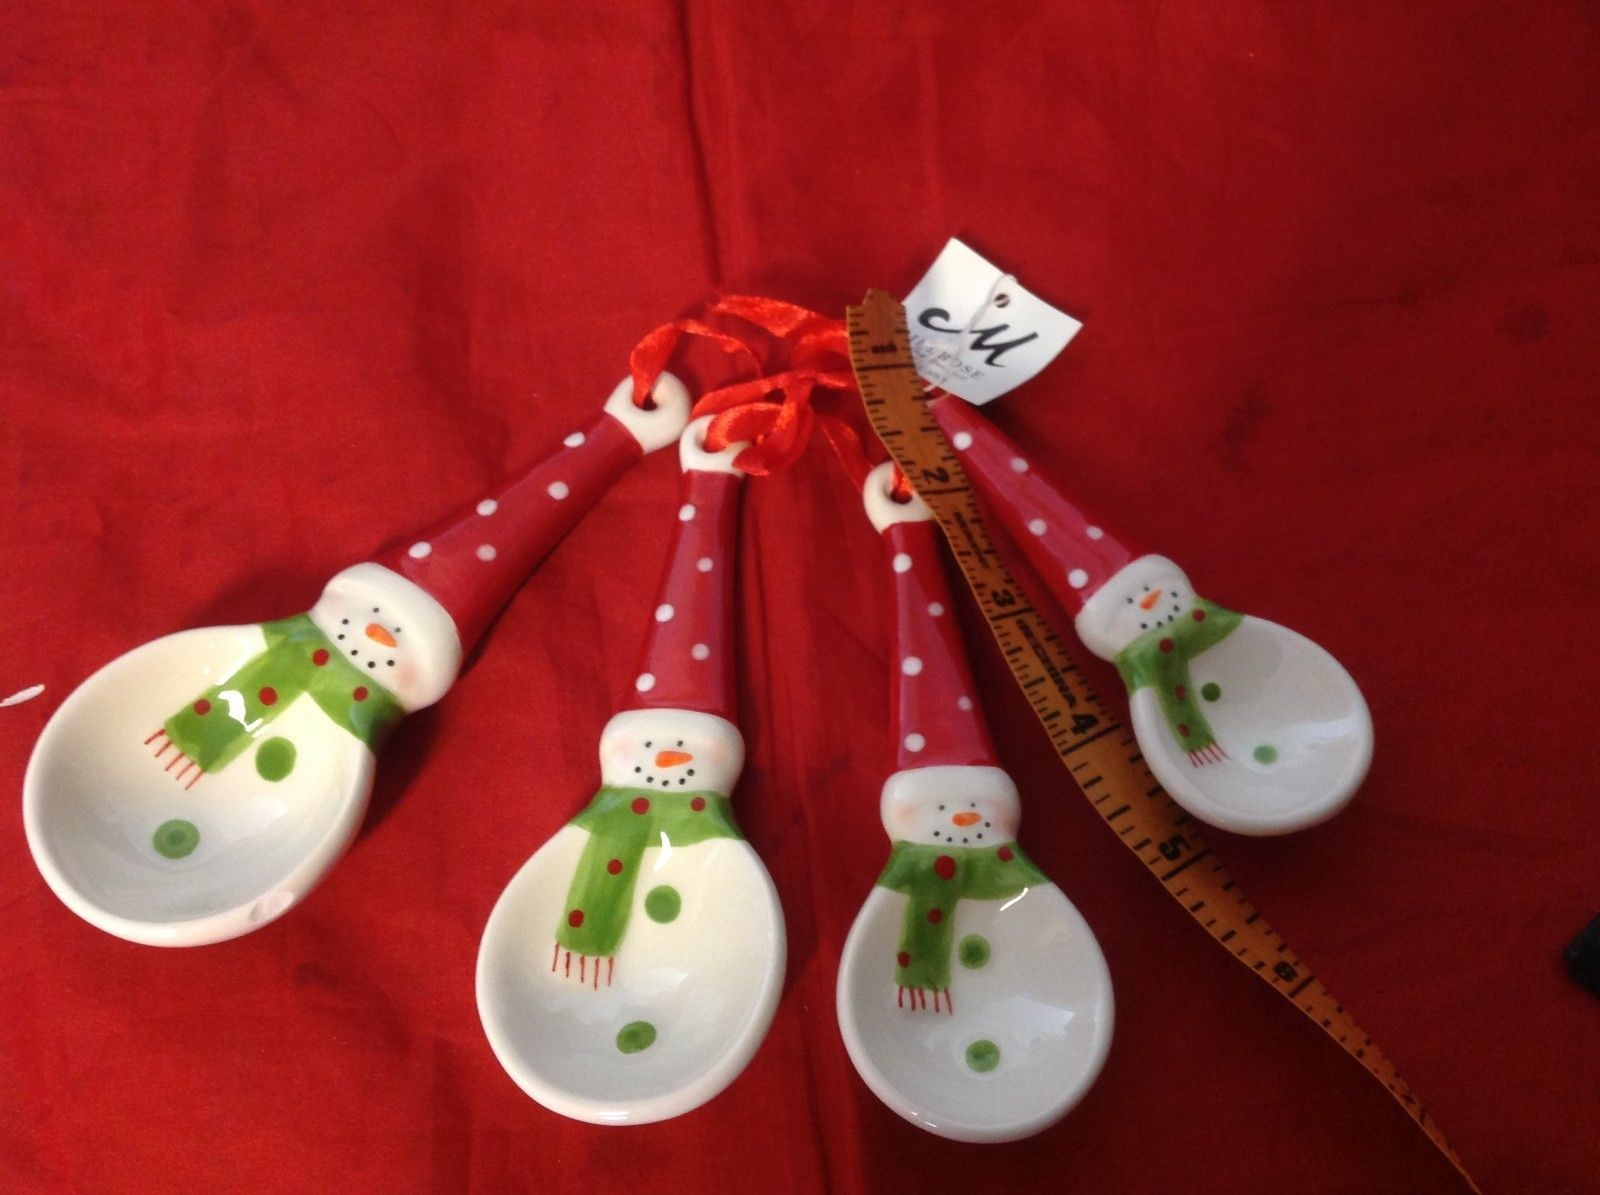 Cute ceramic decorative Snowman  measuring spoon set